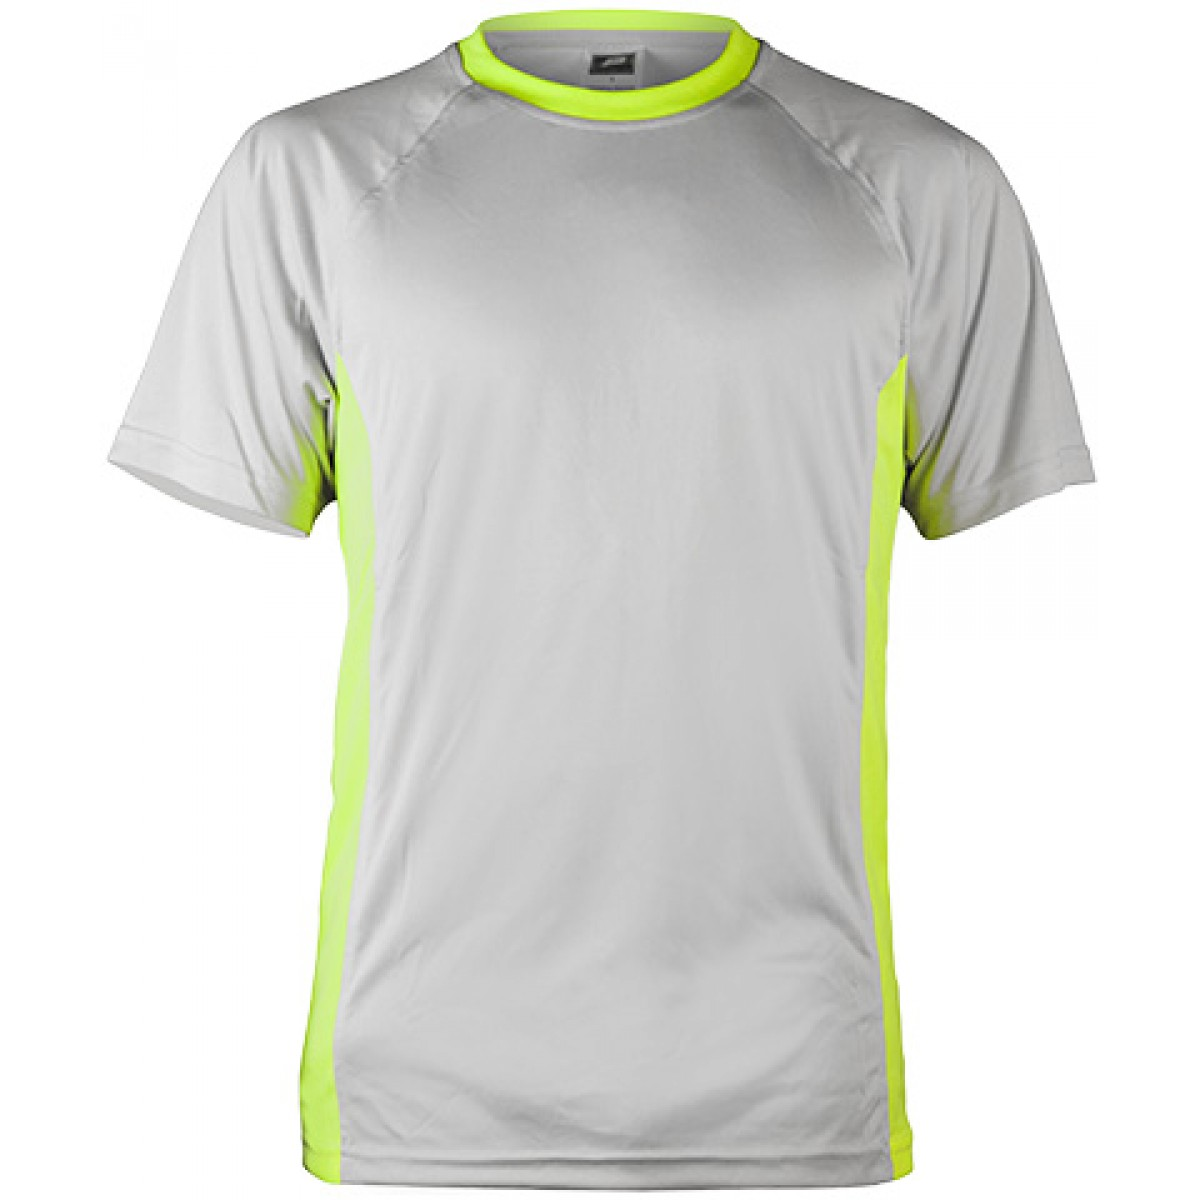 Short Sleeve Performance Fit with Flat-back Mesh Side Insert-Gray/Green-S